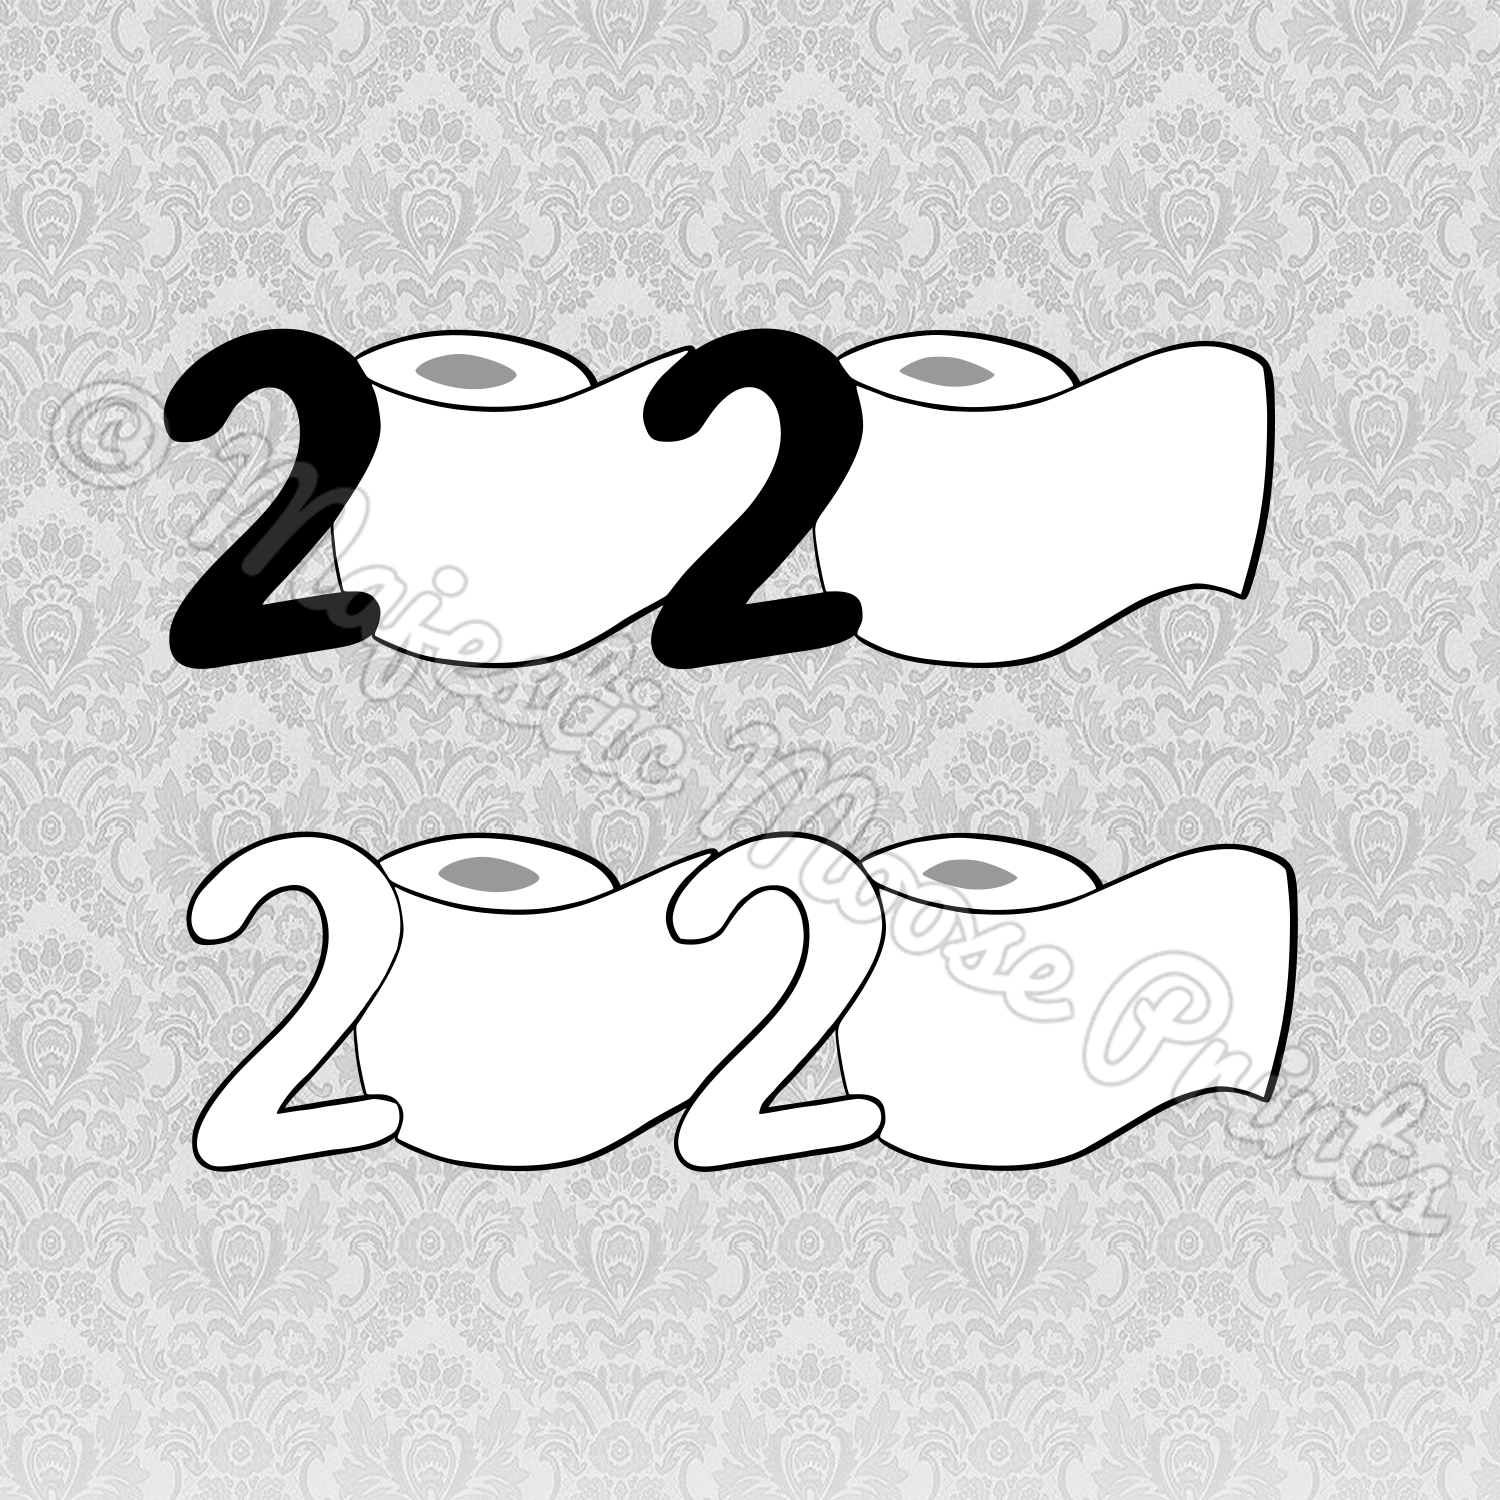 2020 Year of Toilet Paper SVG